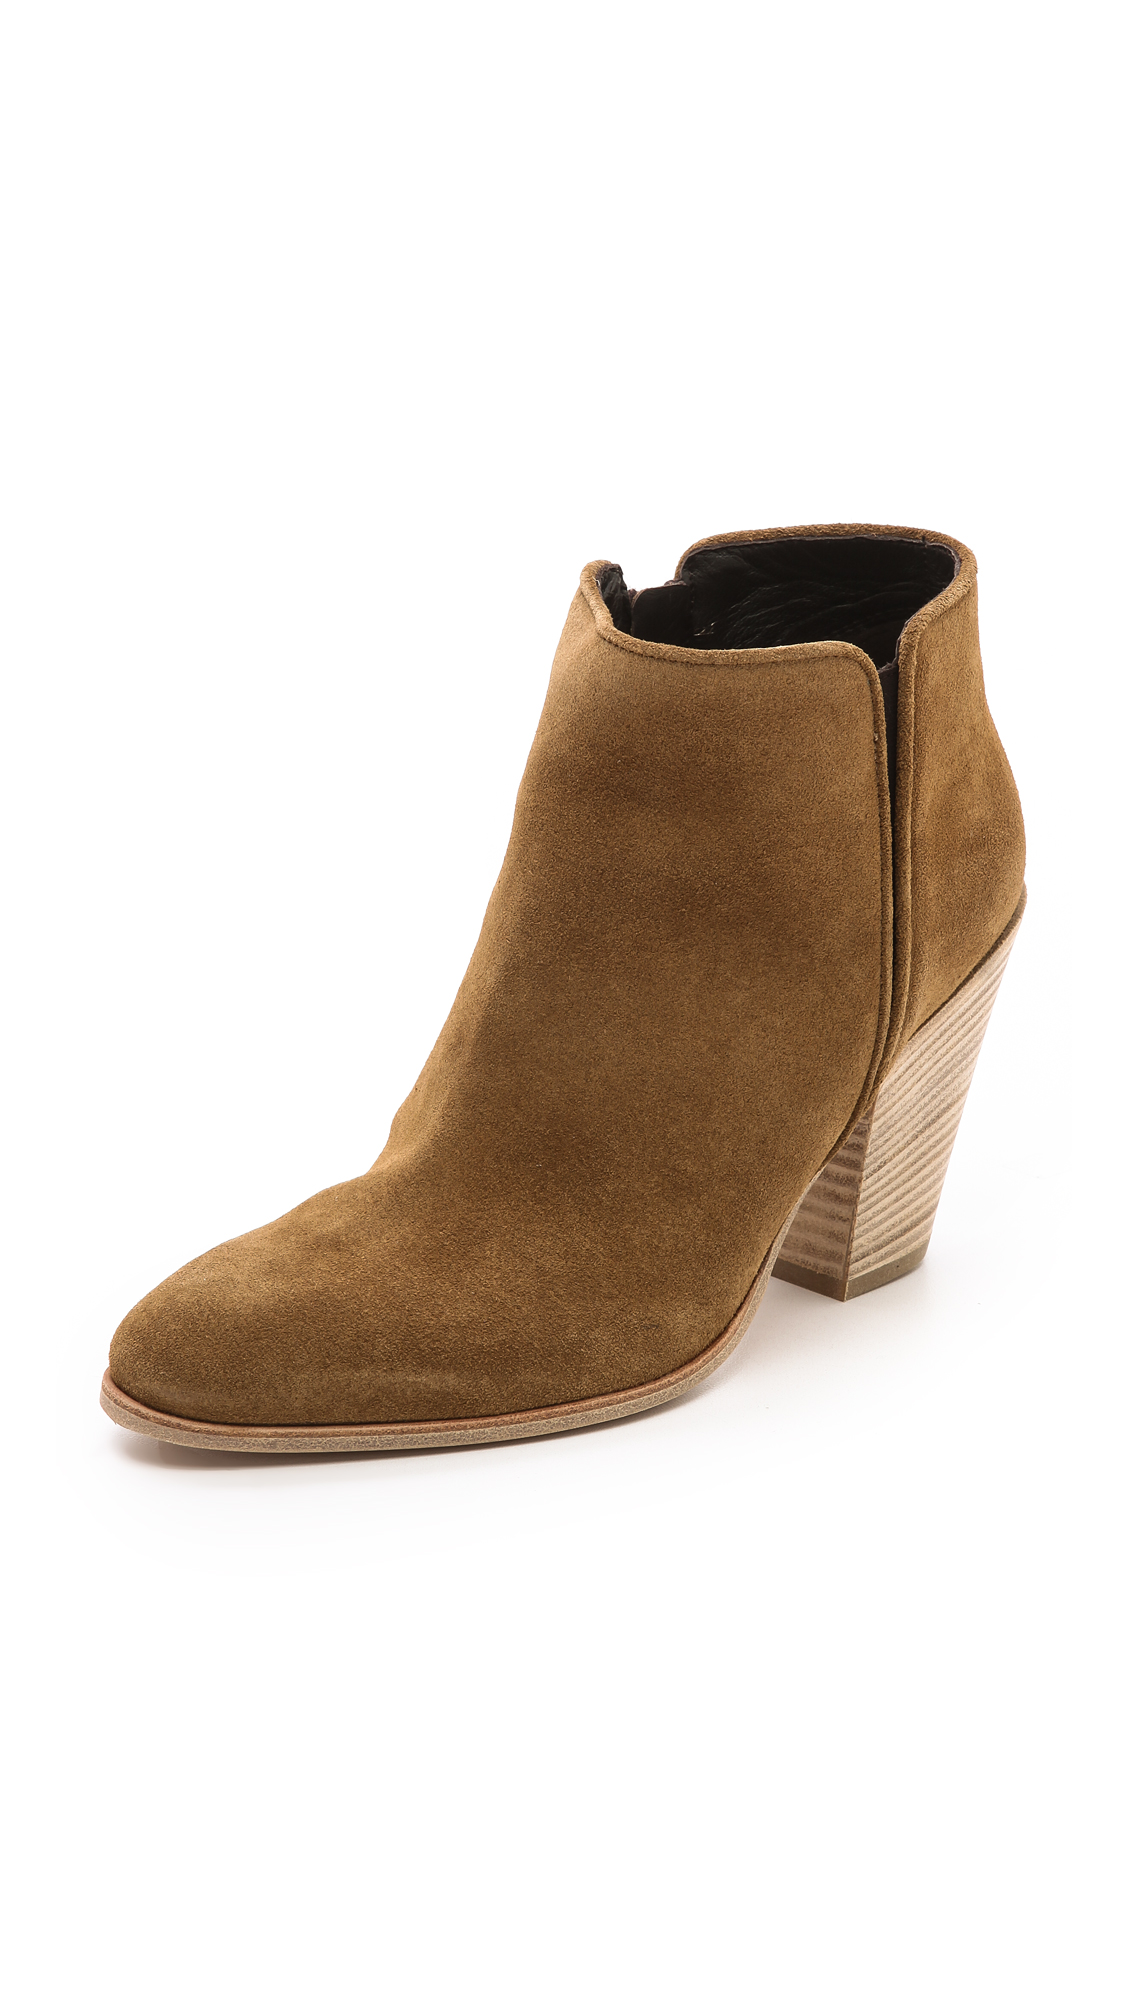 Giuseppe Zanotti Suede Booties In Brown Lyst